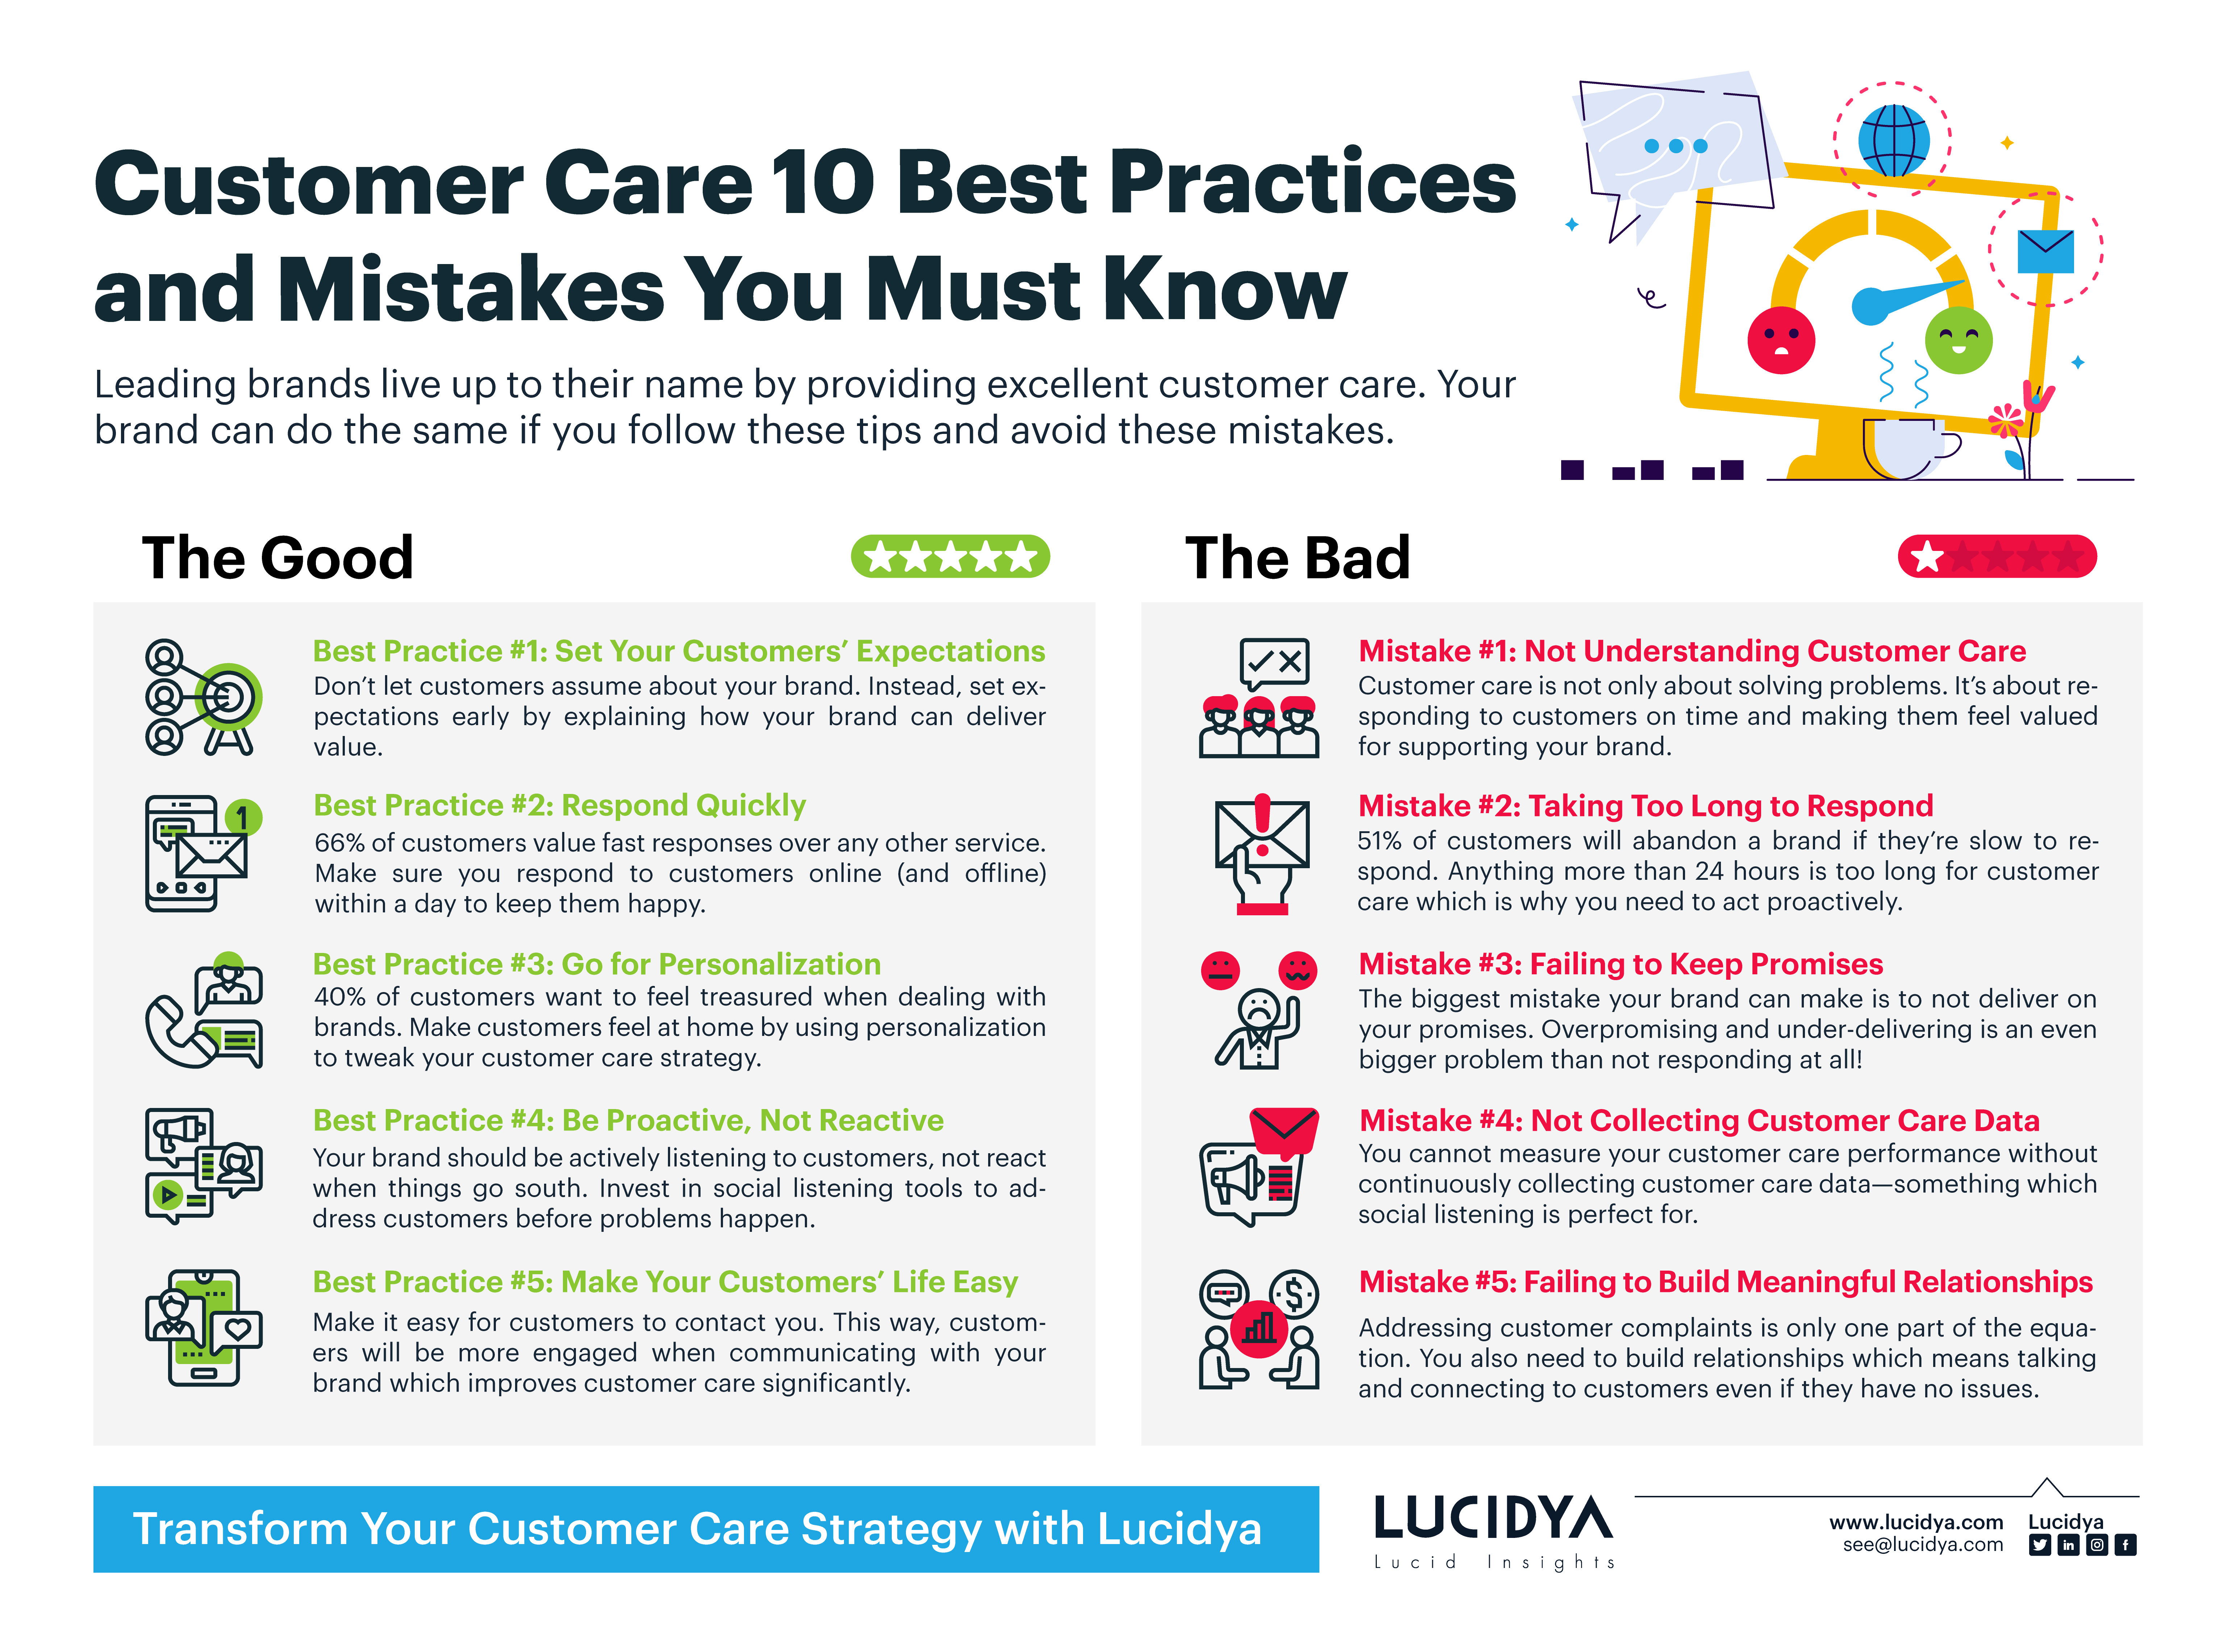 Customer-Care-10-Best-Practices-and-Mistakes-You-Must-Know---Infographic1